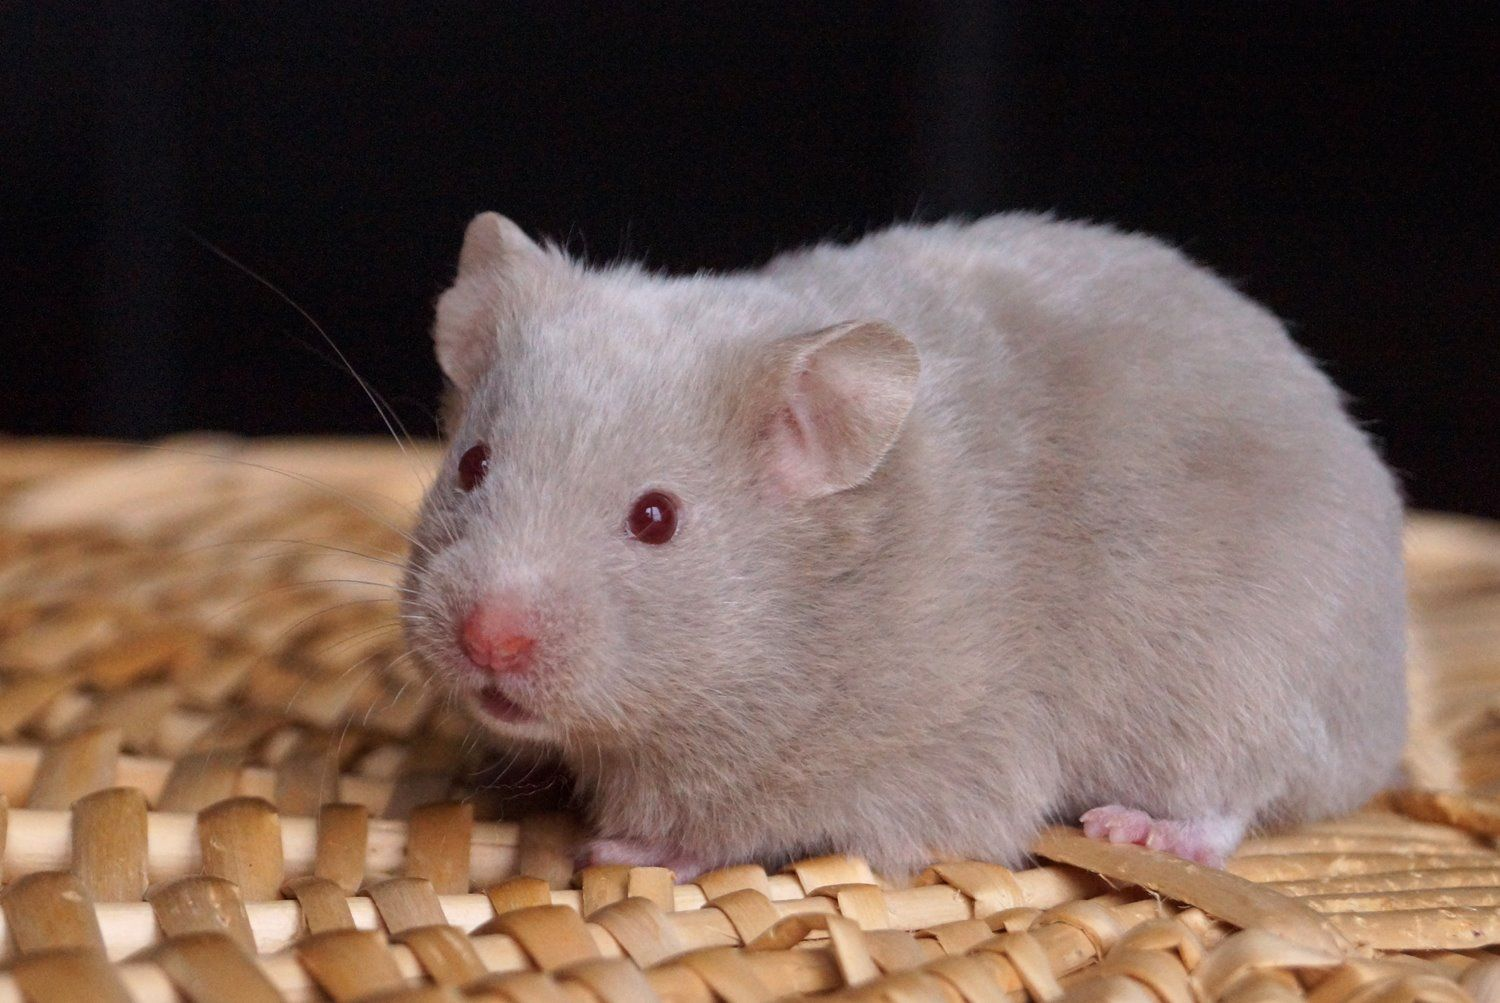 Photos From Stardust Hamstery S Post Stardust Hamstery Syrian Hamster Cute Hamsters Hamster Life